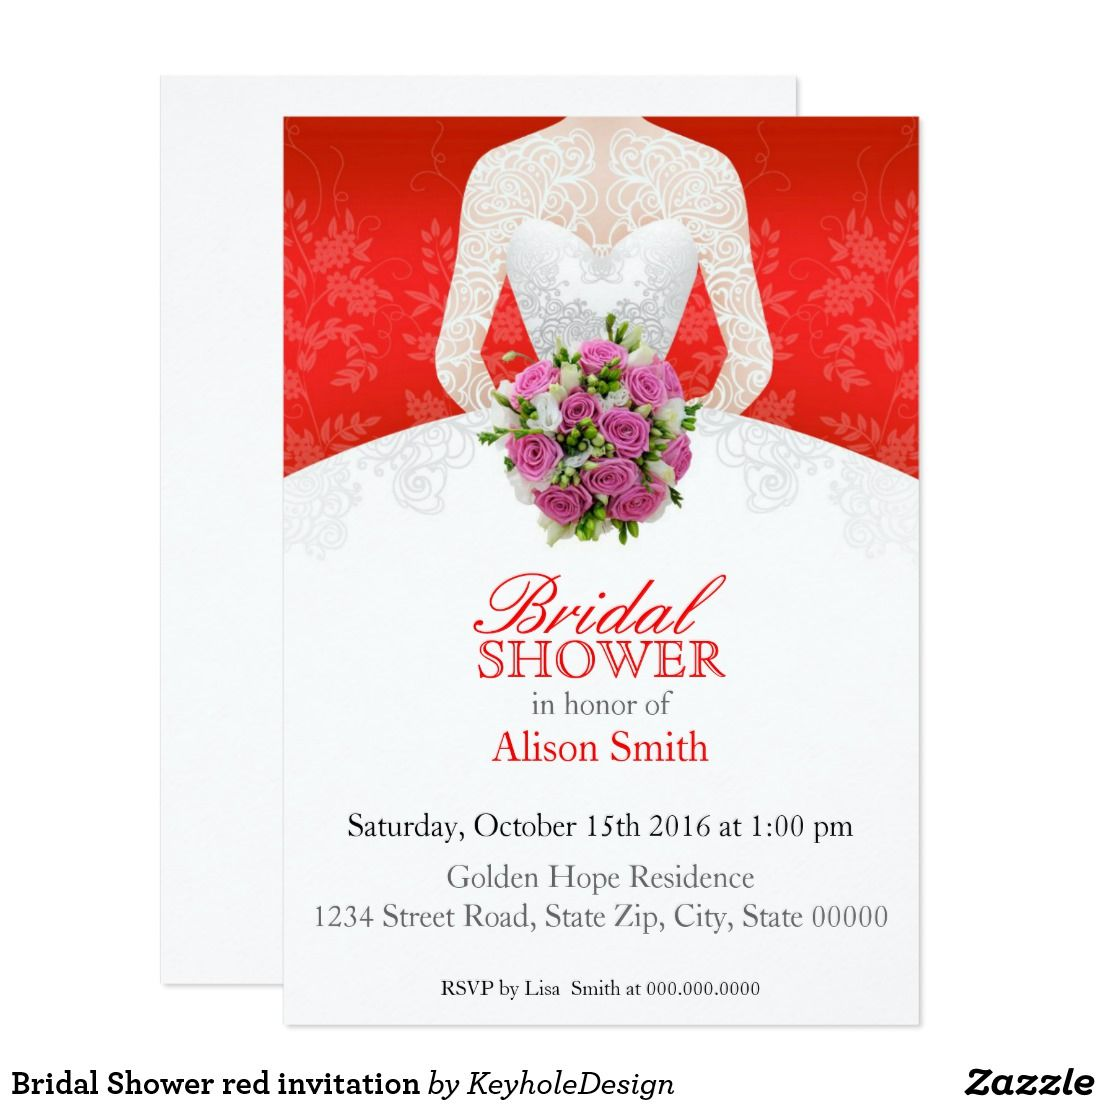 Luxury Bridal Shower Clipart For Invitations Crest - Invitations and ...